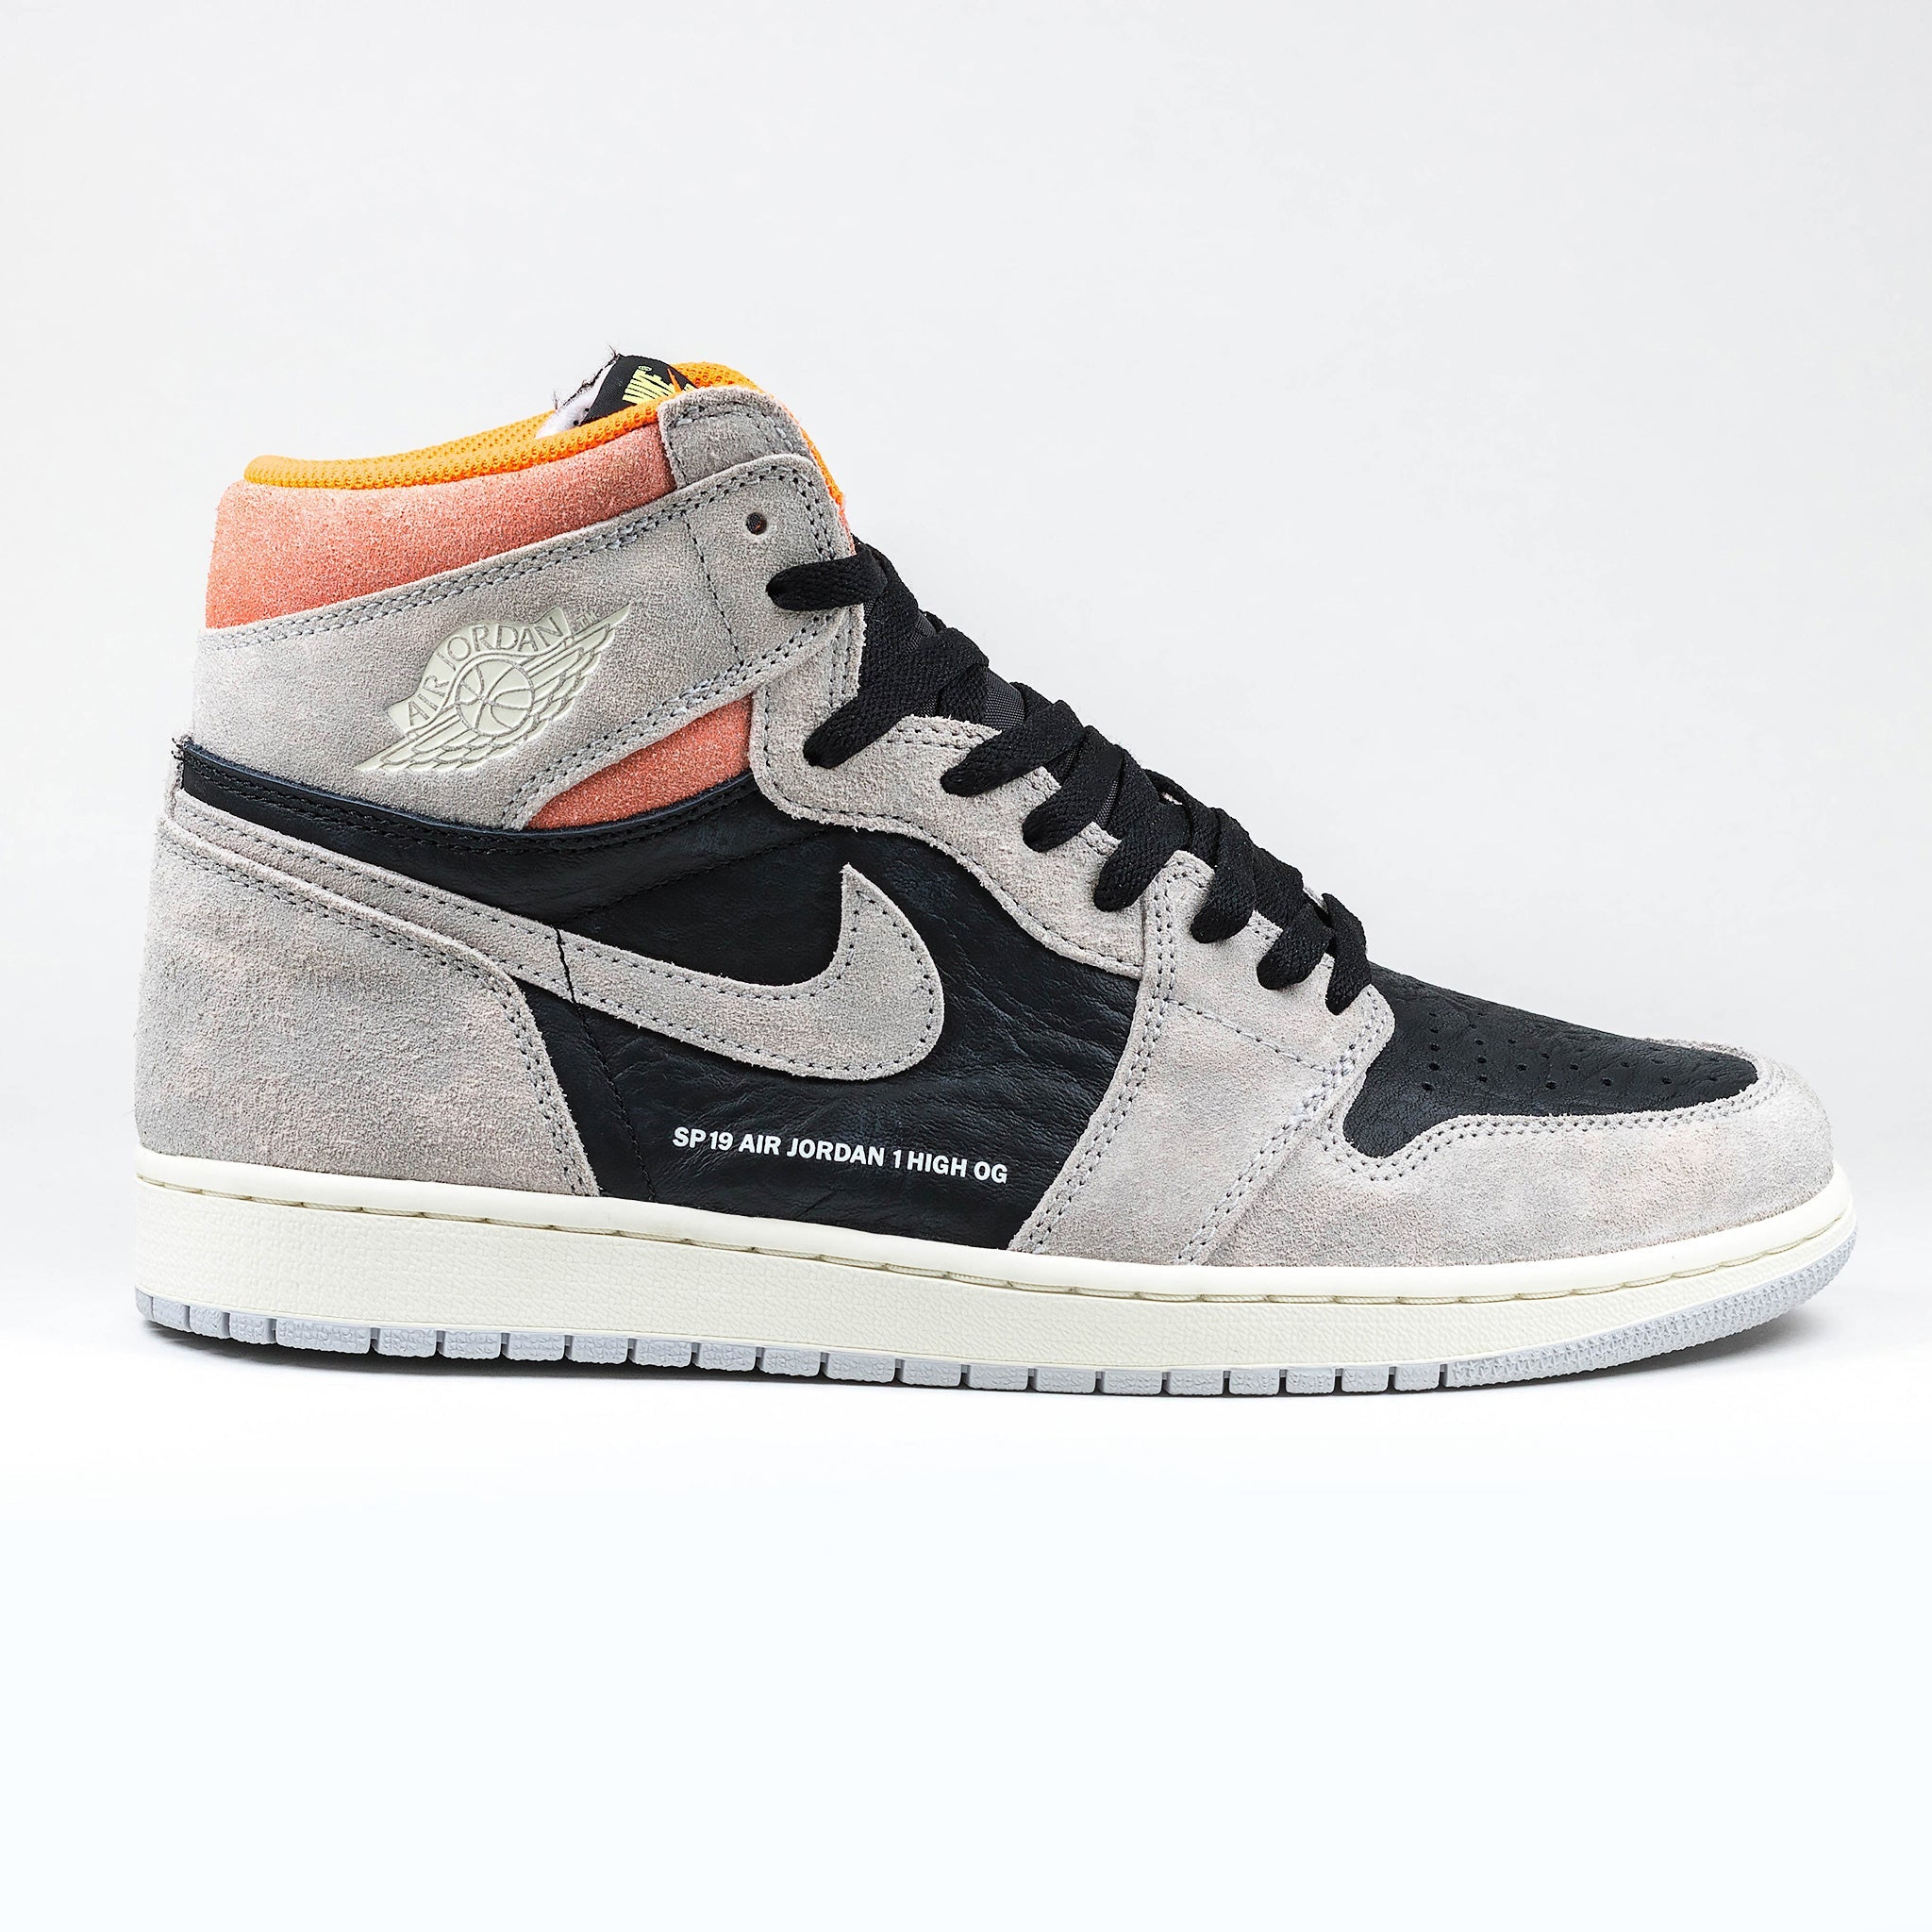 promo code 93b7d 76f69 Nike Air Jordan 1 Retro High Neutral Grey Hyper Crimson